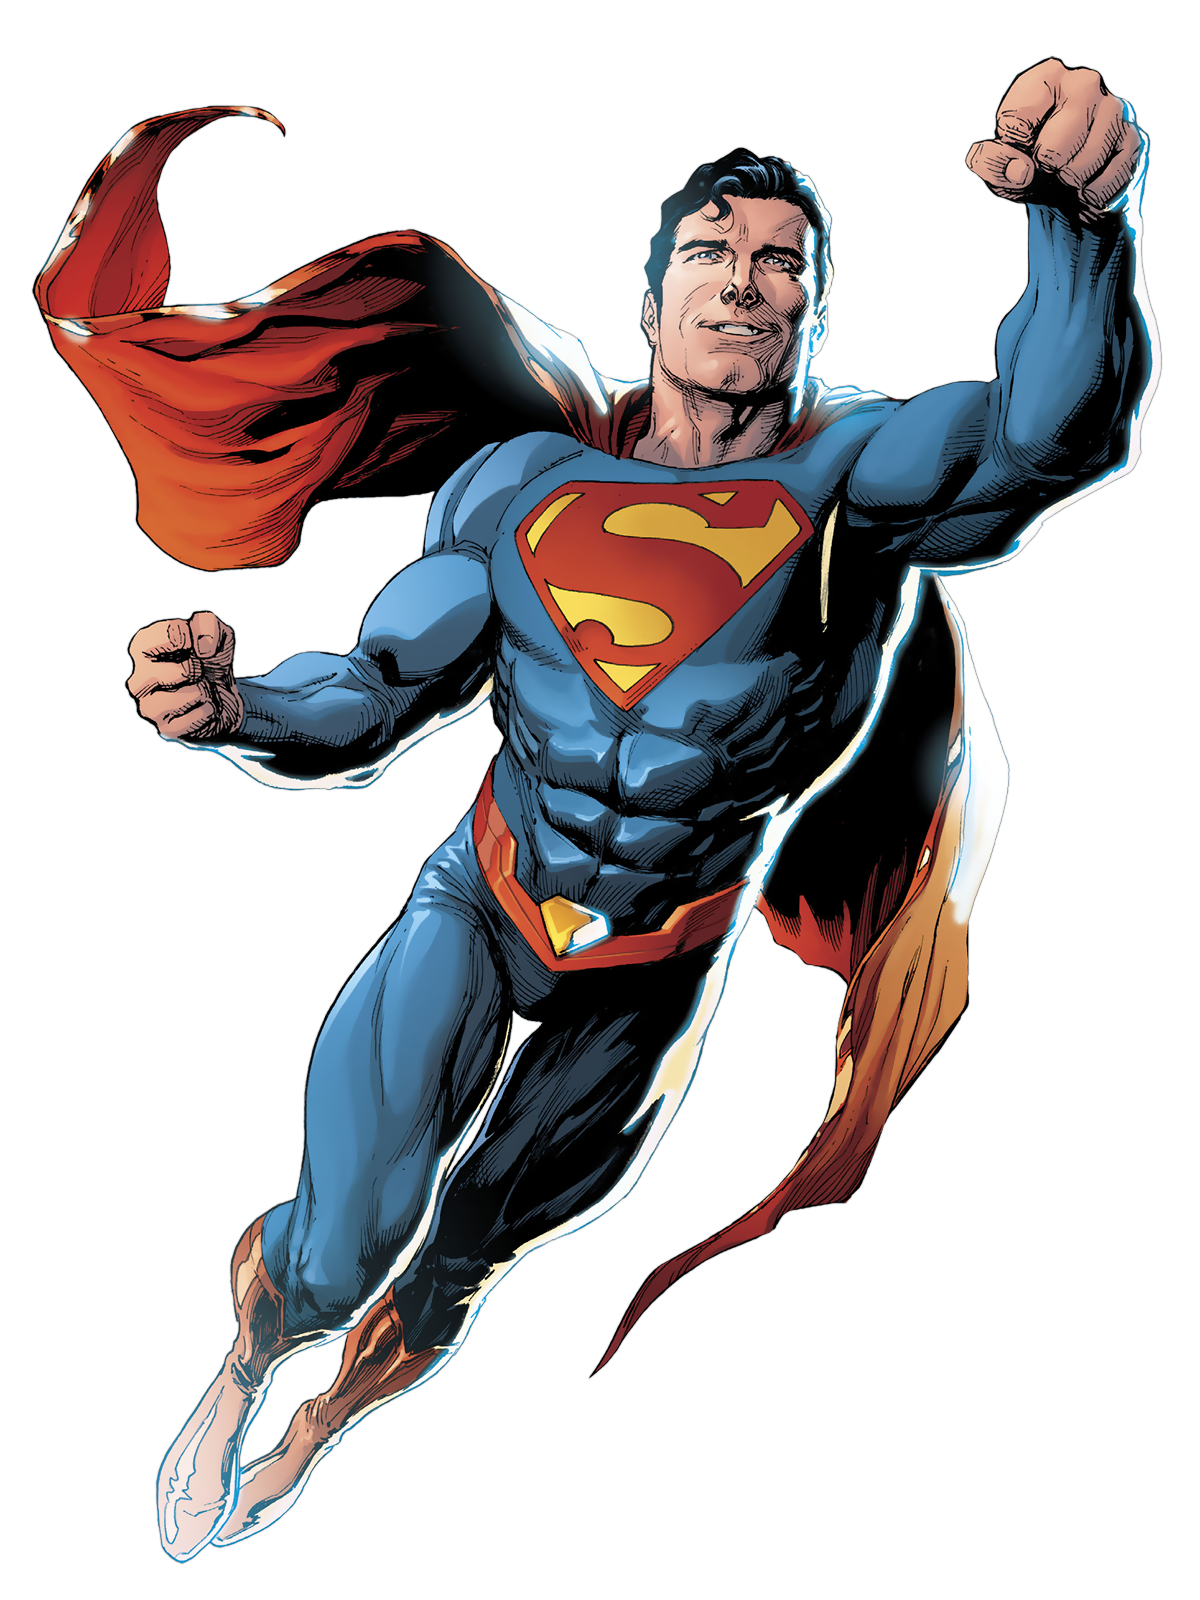 Image - Superman Action 976 Gary Frank.png | Superman Wiki ...